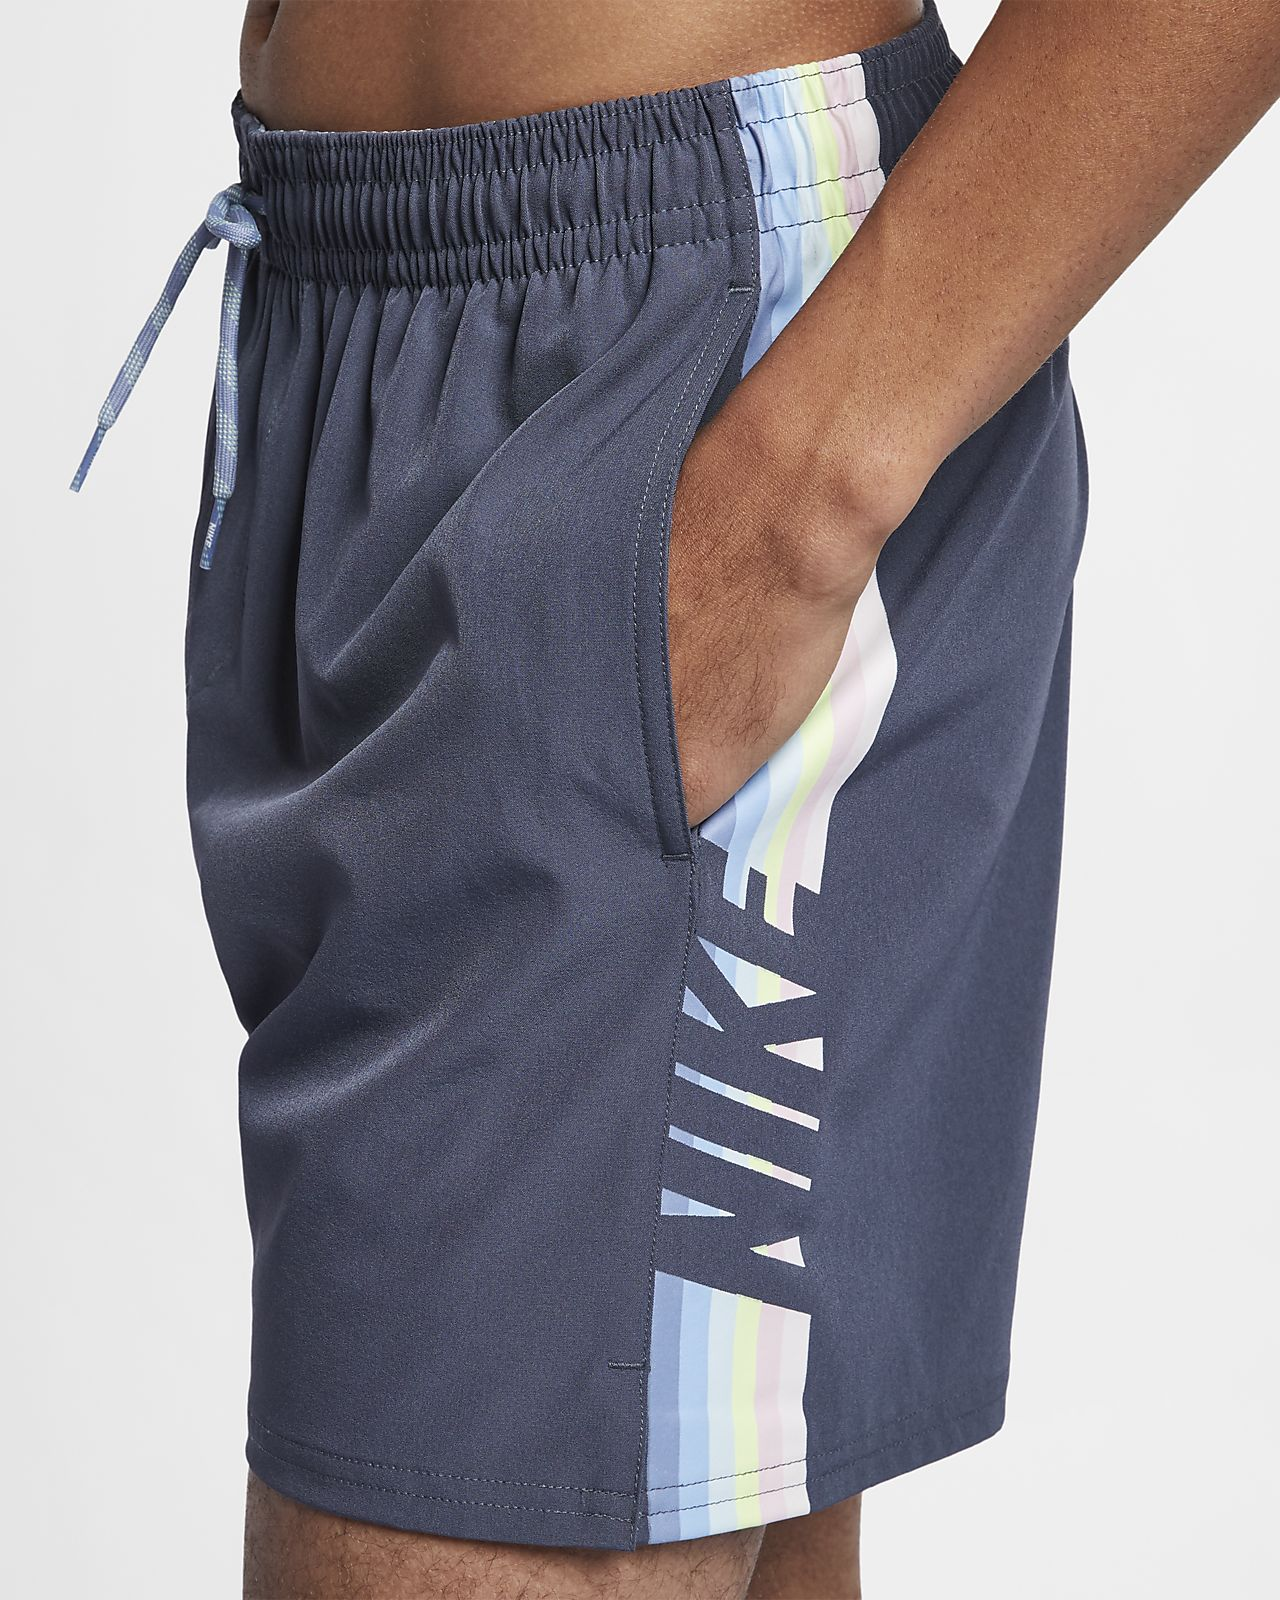 Nike Swim Retro Stripe Lap Men's 13cm (approx.) Swimming Trunks